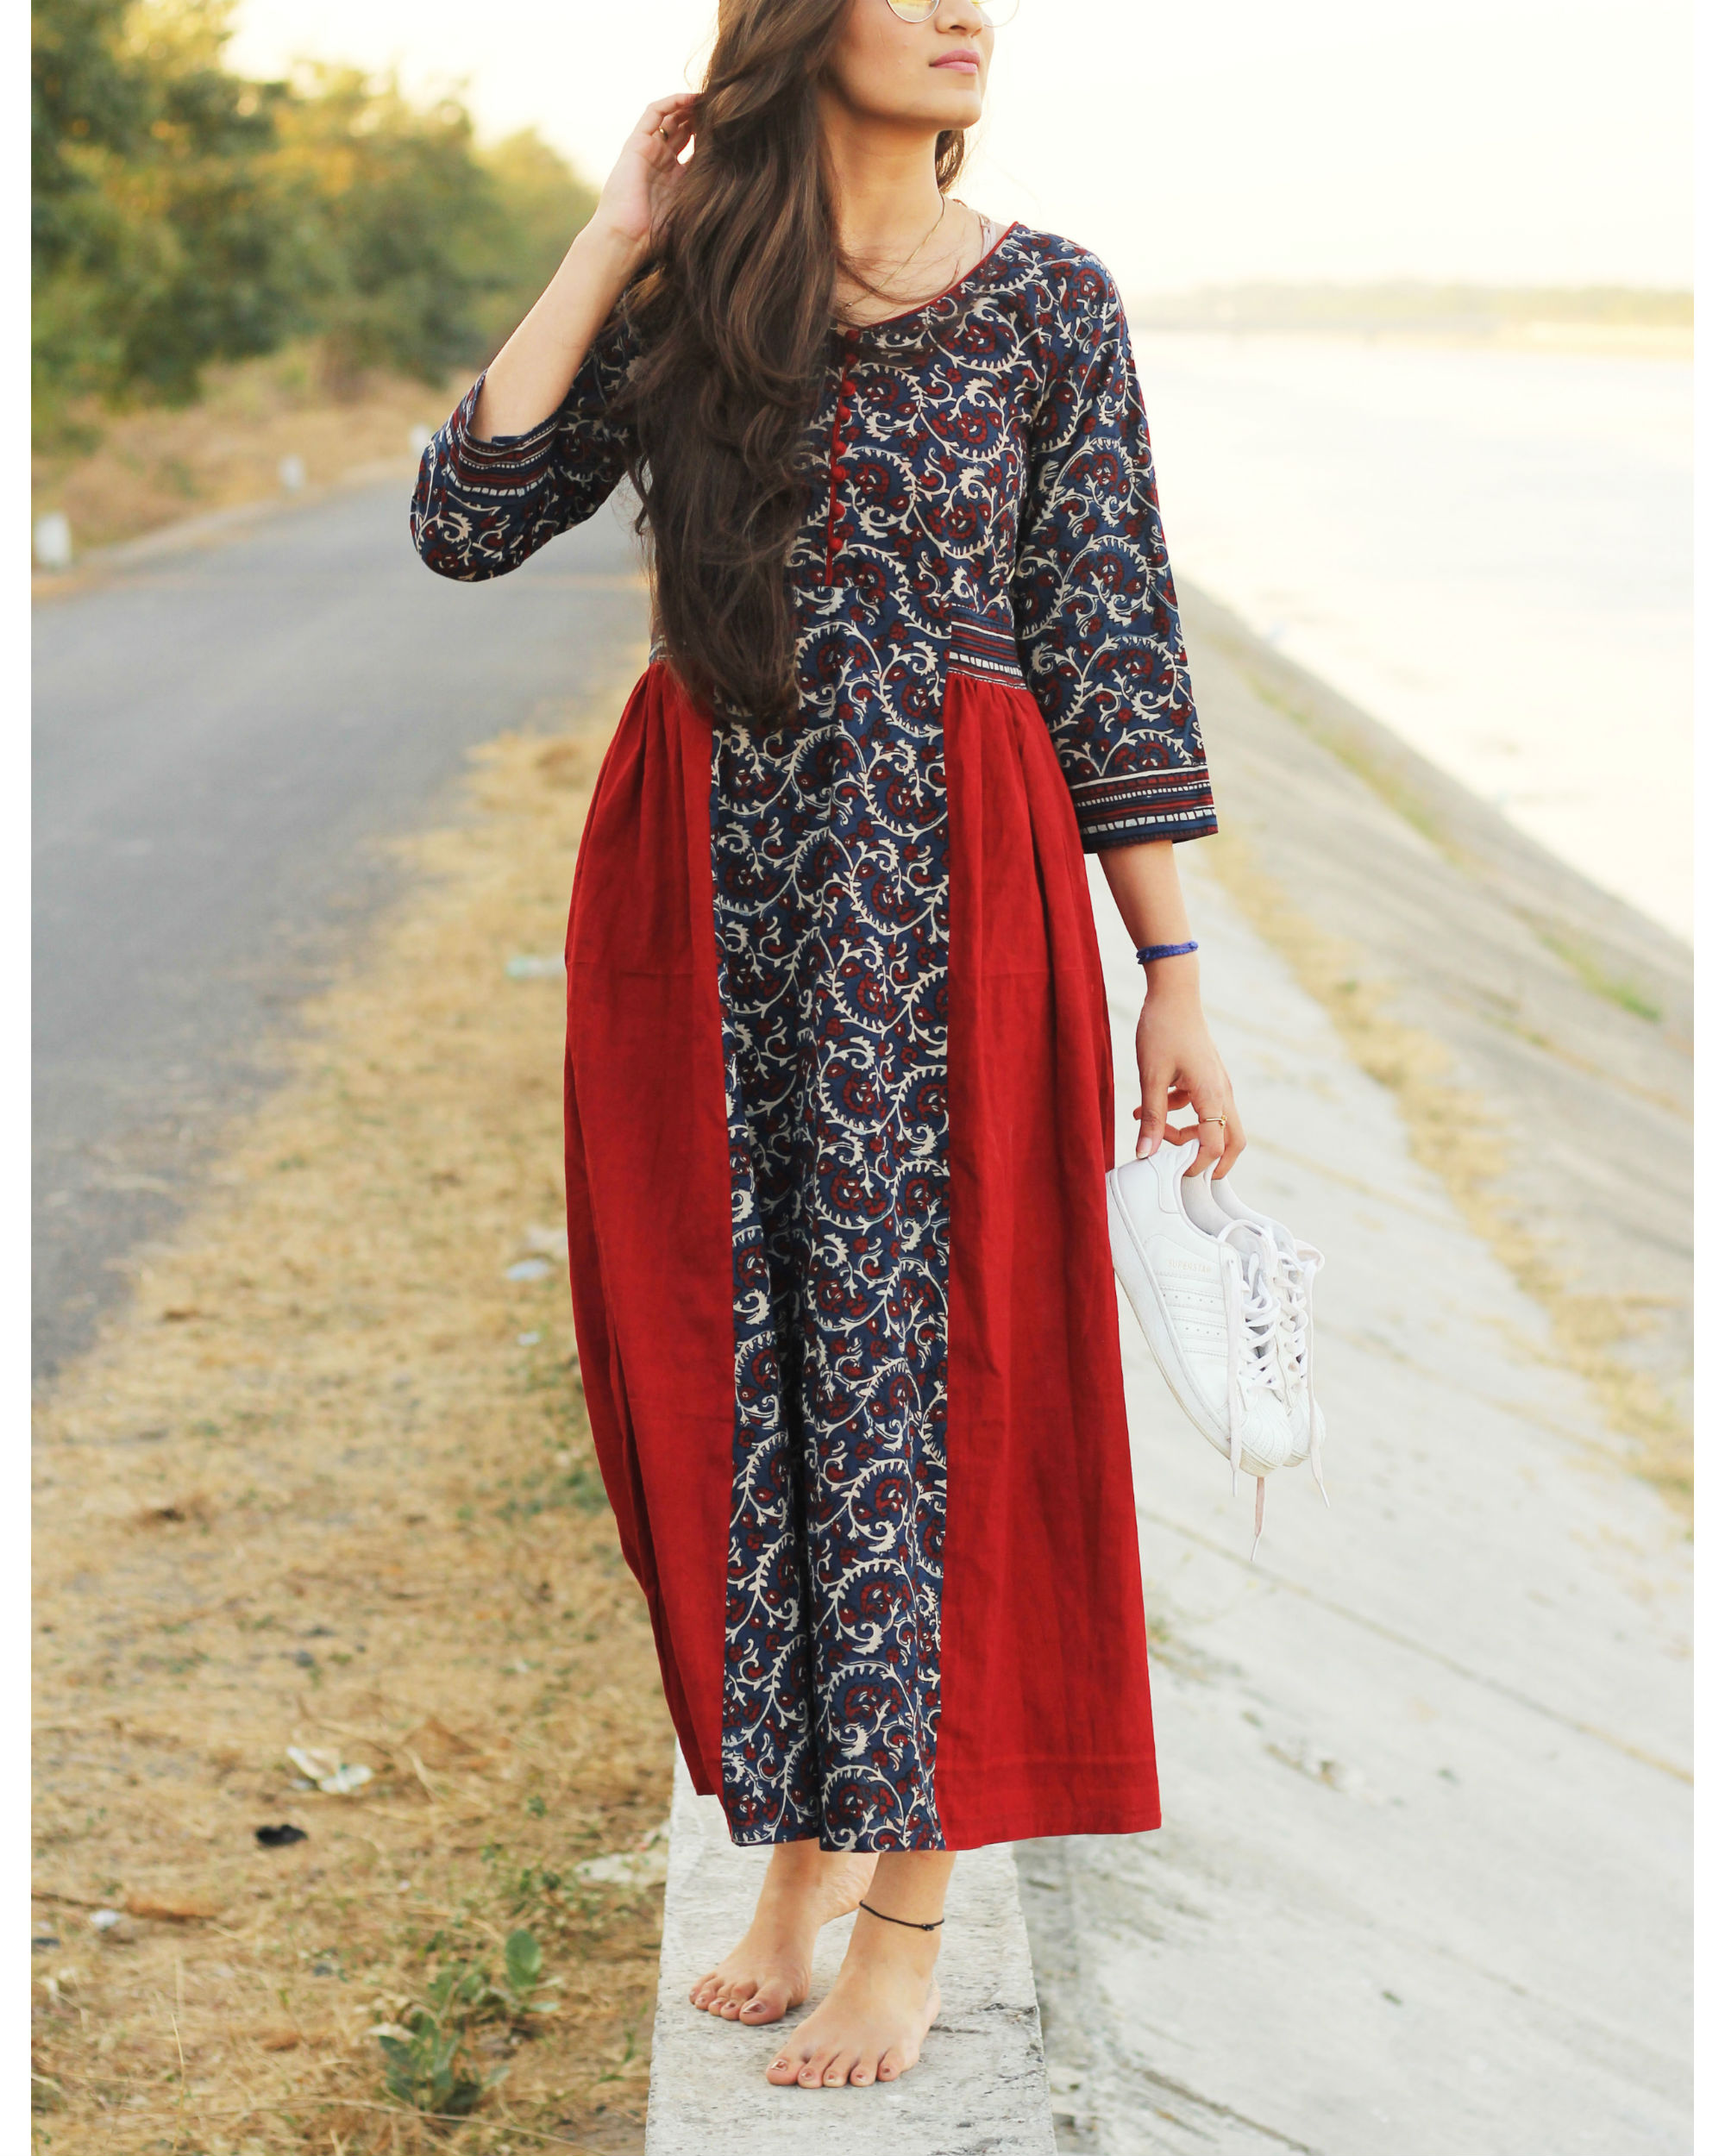 Indigo and red ajrakh dress